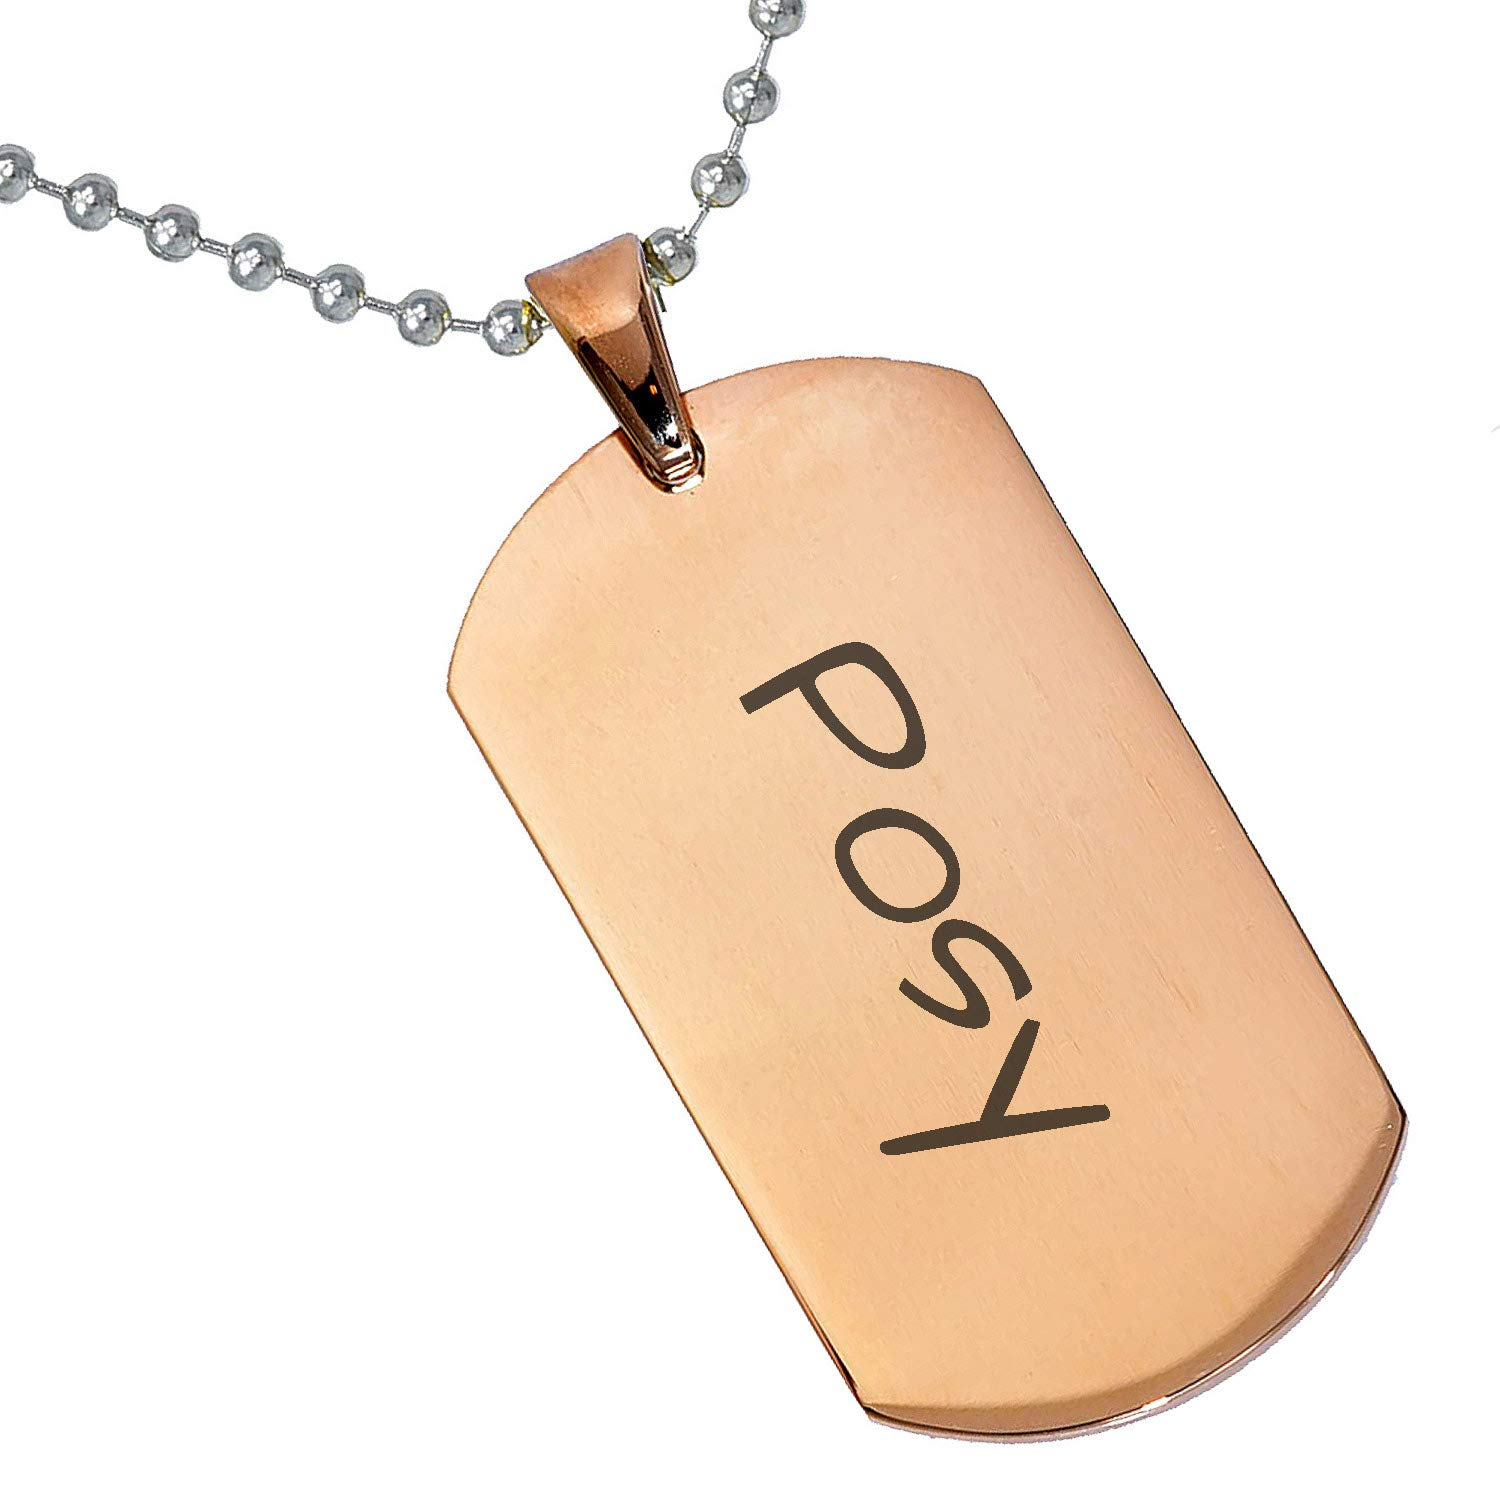 Stainless Steel Silver Gold Black Rose Gold Color Baby Name Posy Engraved Personalized Gifts For Son Daughter Boyfriend Girlfriend Initial Customizable Pendant Necklace Dog Tags 24 Ball Chain